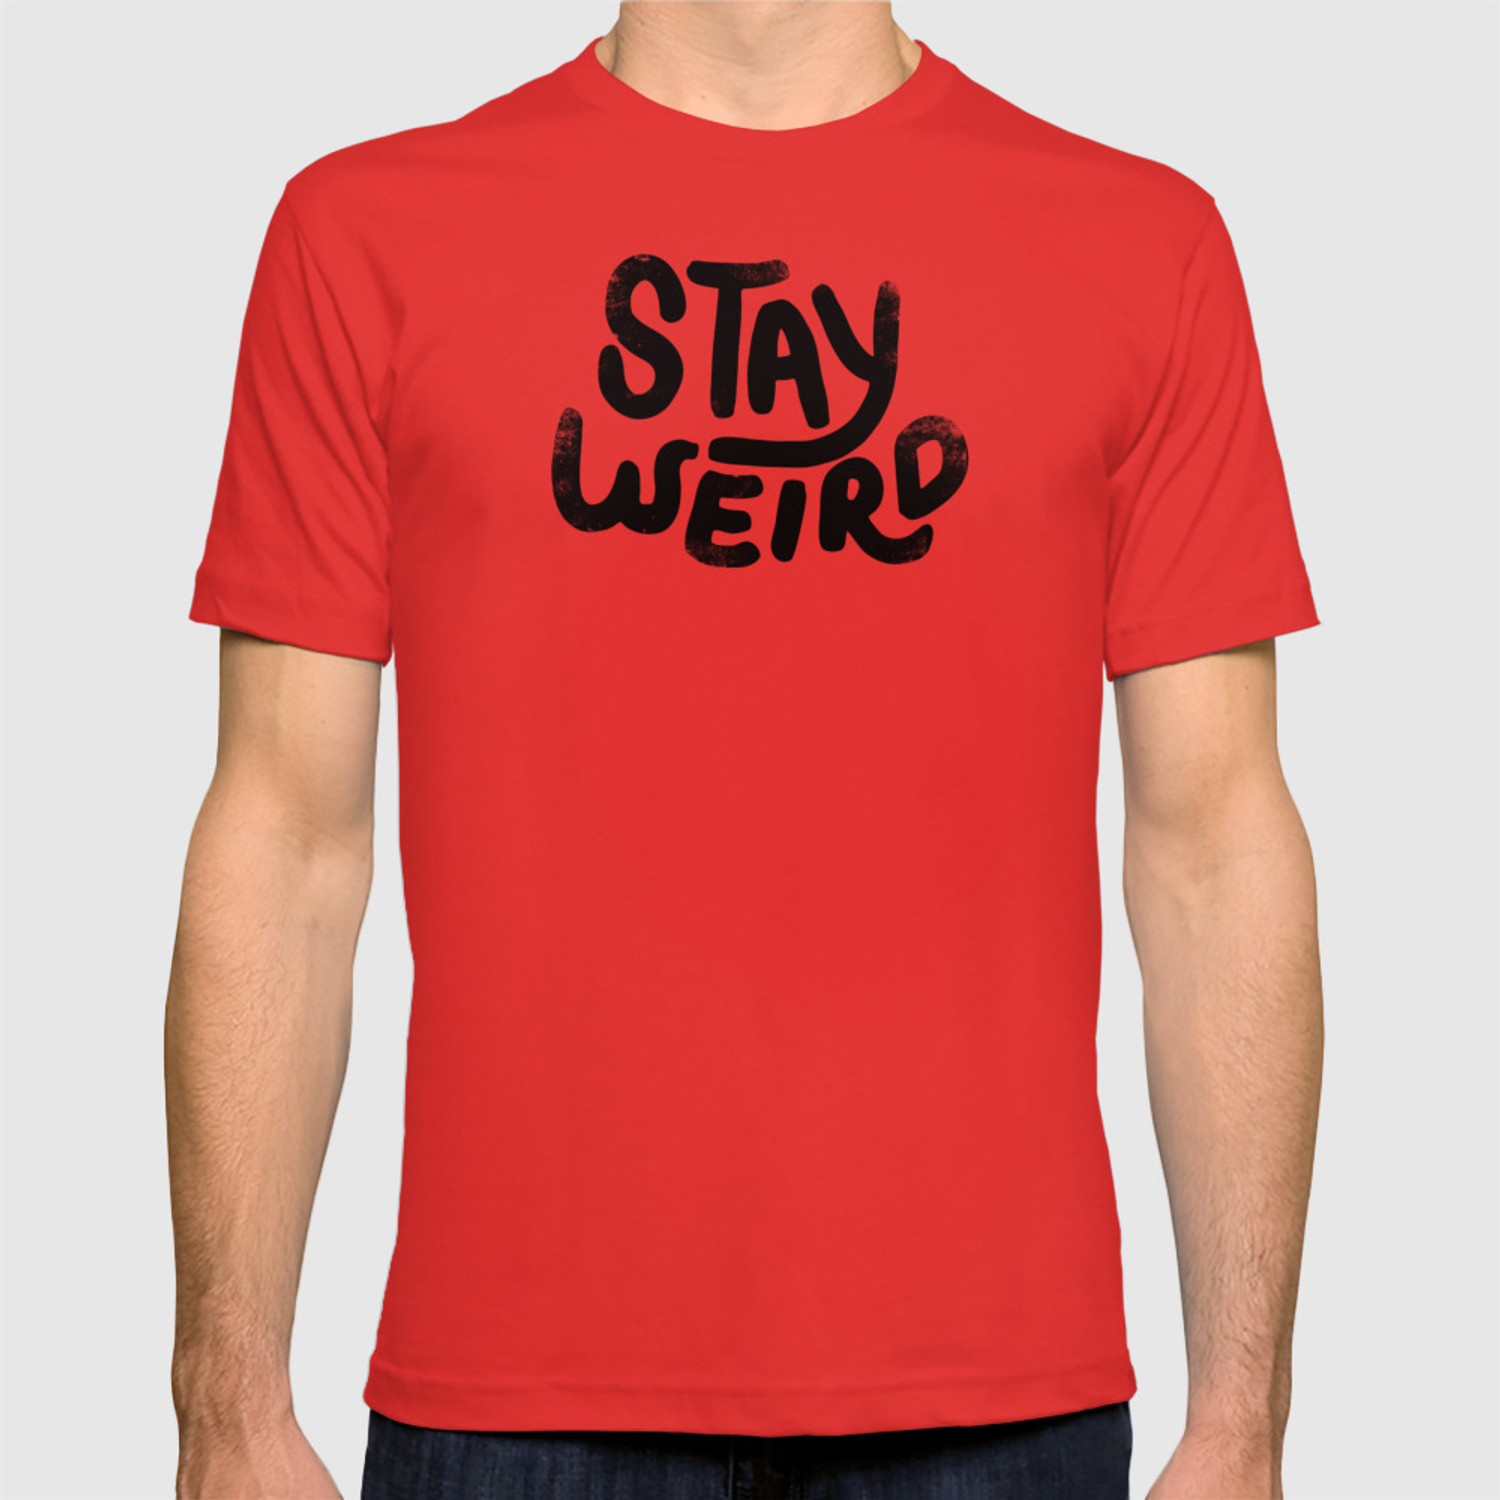 203713dd1 Stay Weird Vintage T-shirt by phirst | Society6